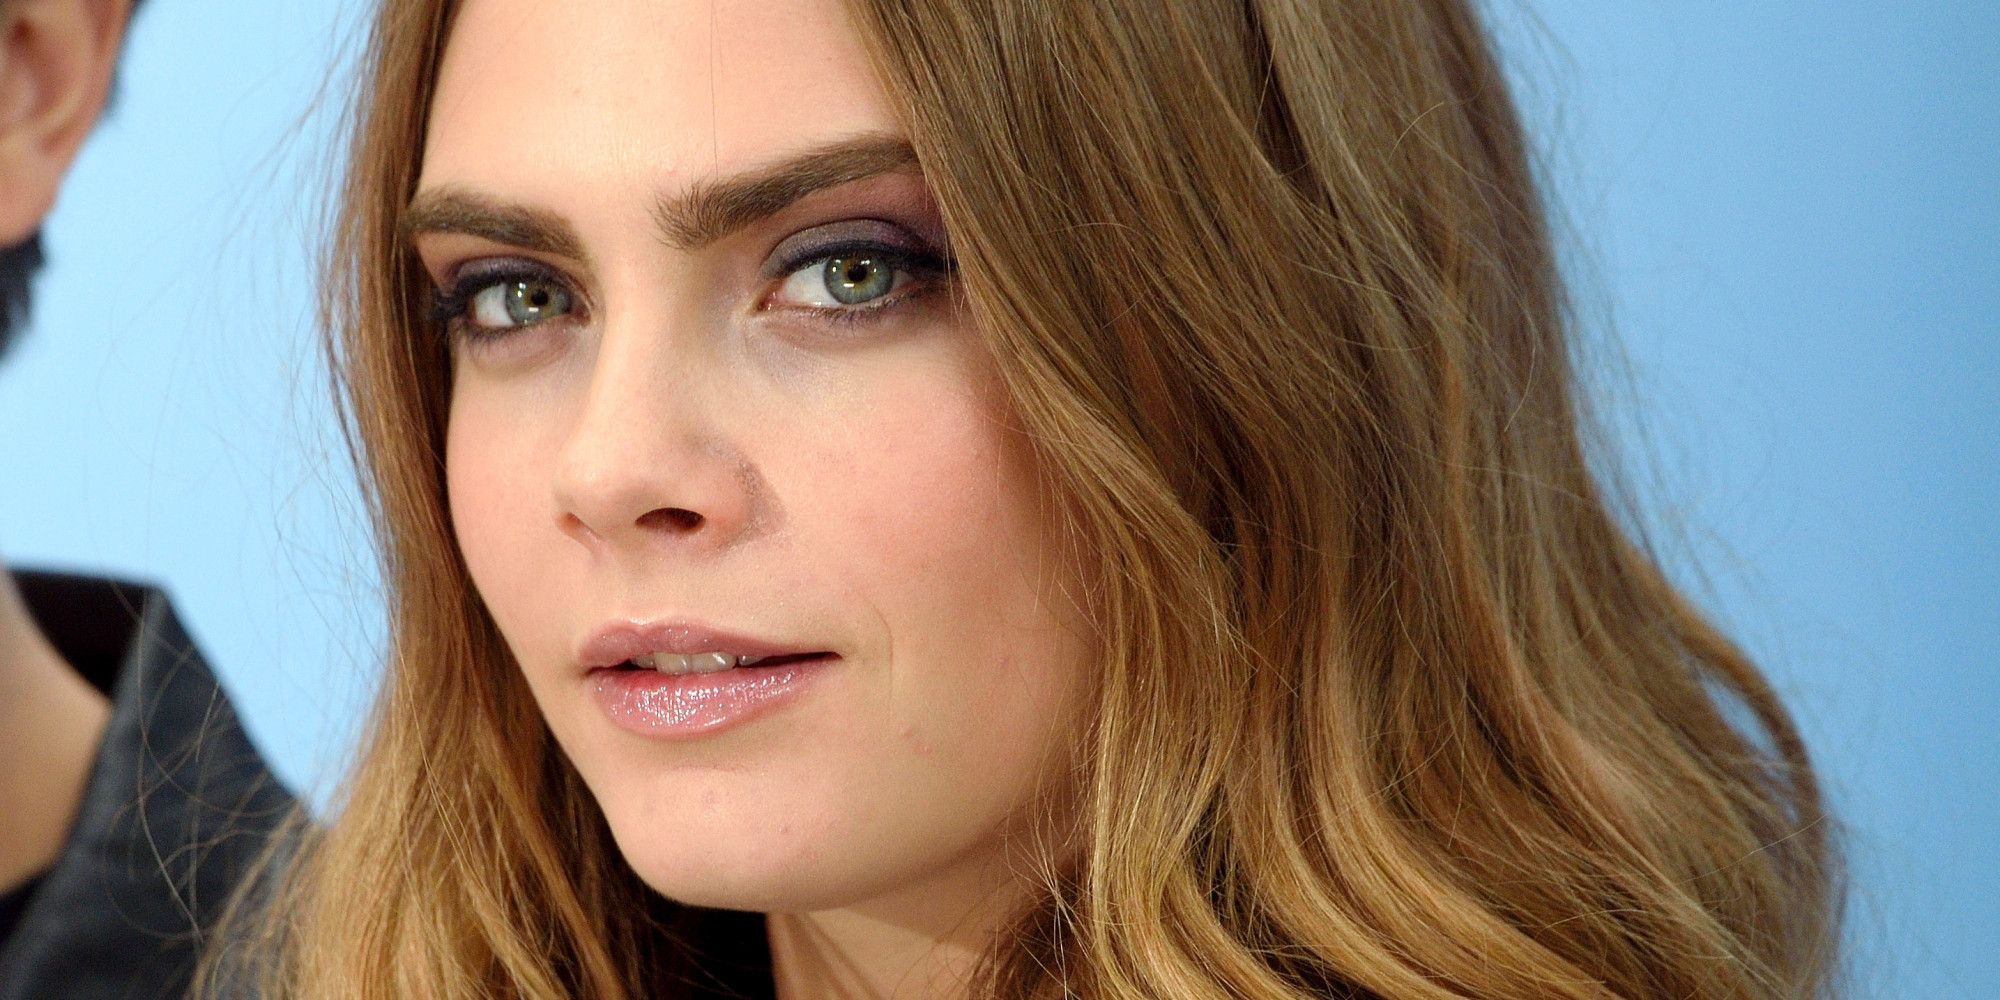 """LONDON, ENGLAND - JUNE 18:  Cara Delevingne attends the """"Paper Towns"""" Photocall at Claridges Hotel on June 18, 2015 in London, England.  (Photo by Karwai Tang/WireImage)"""